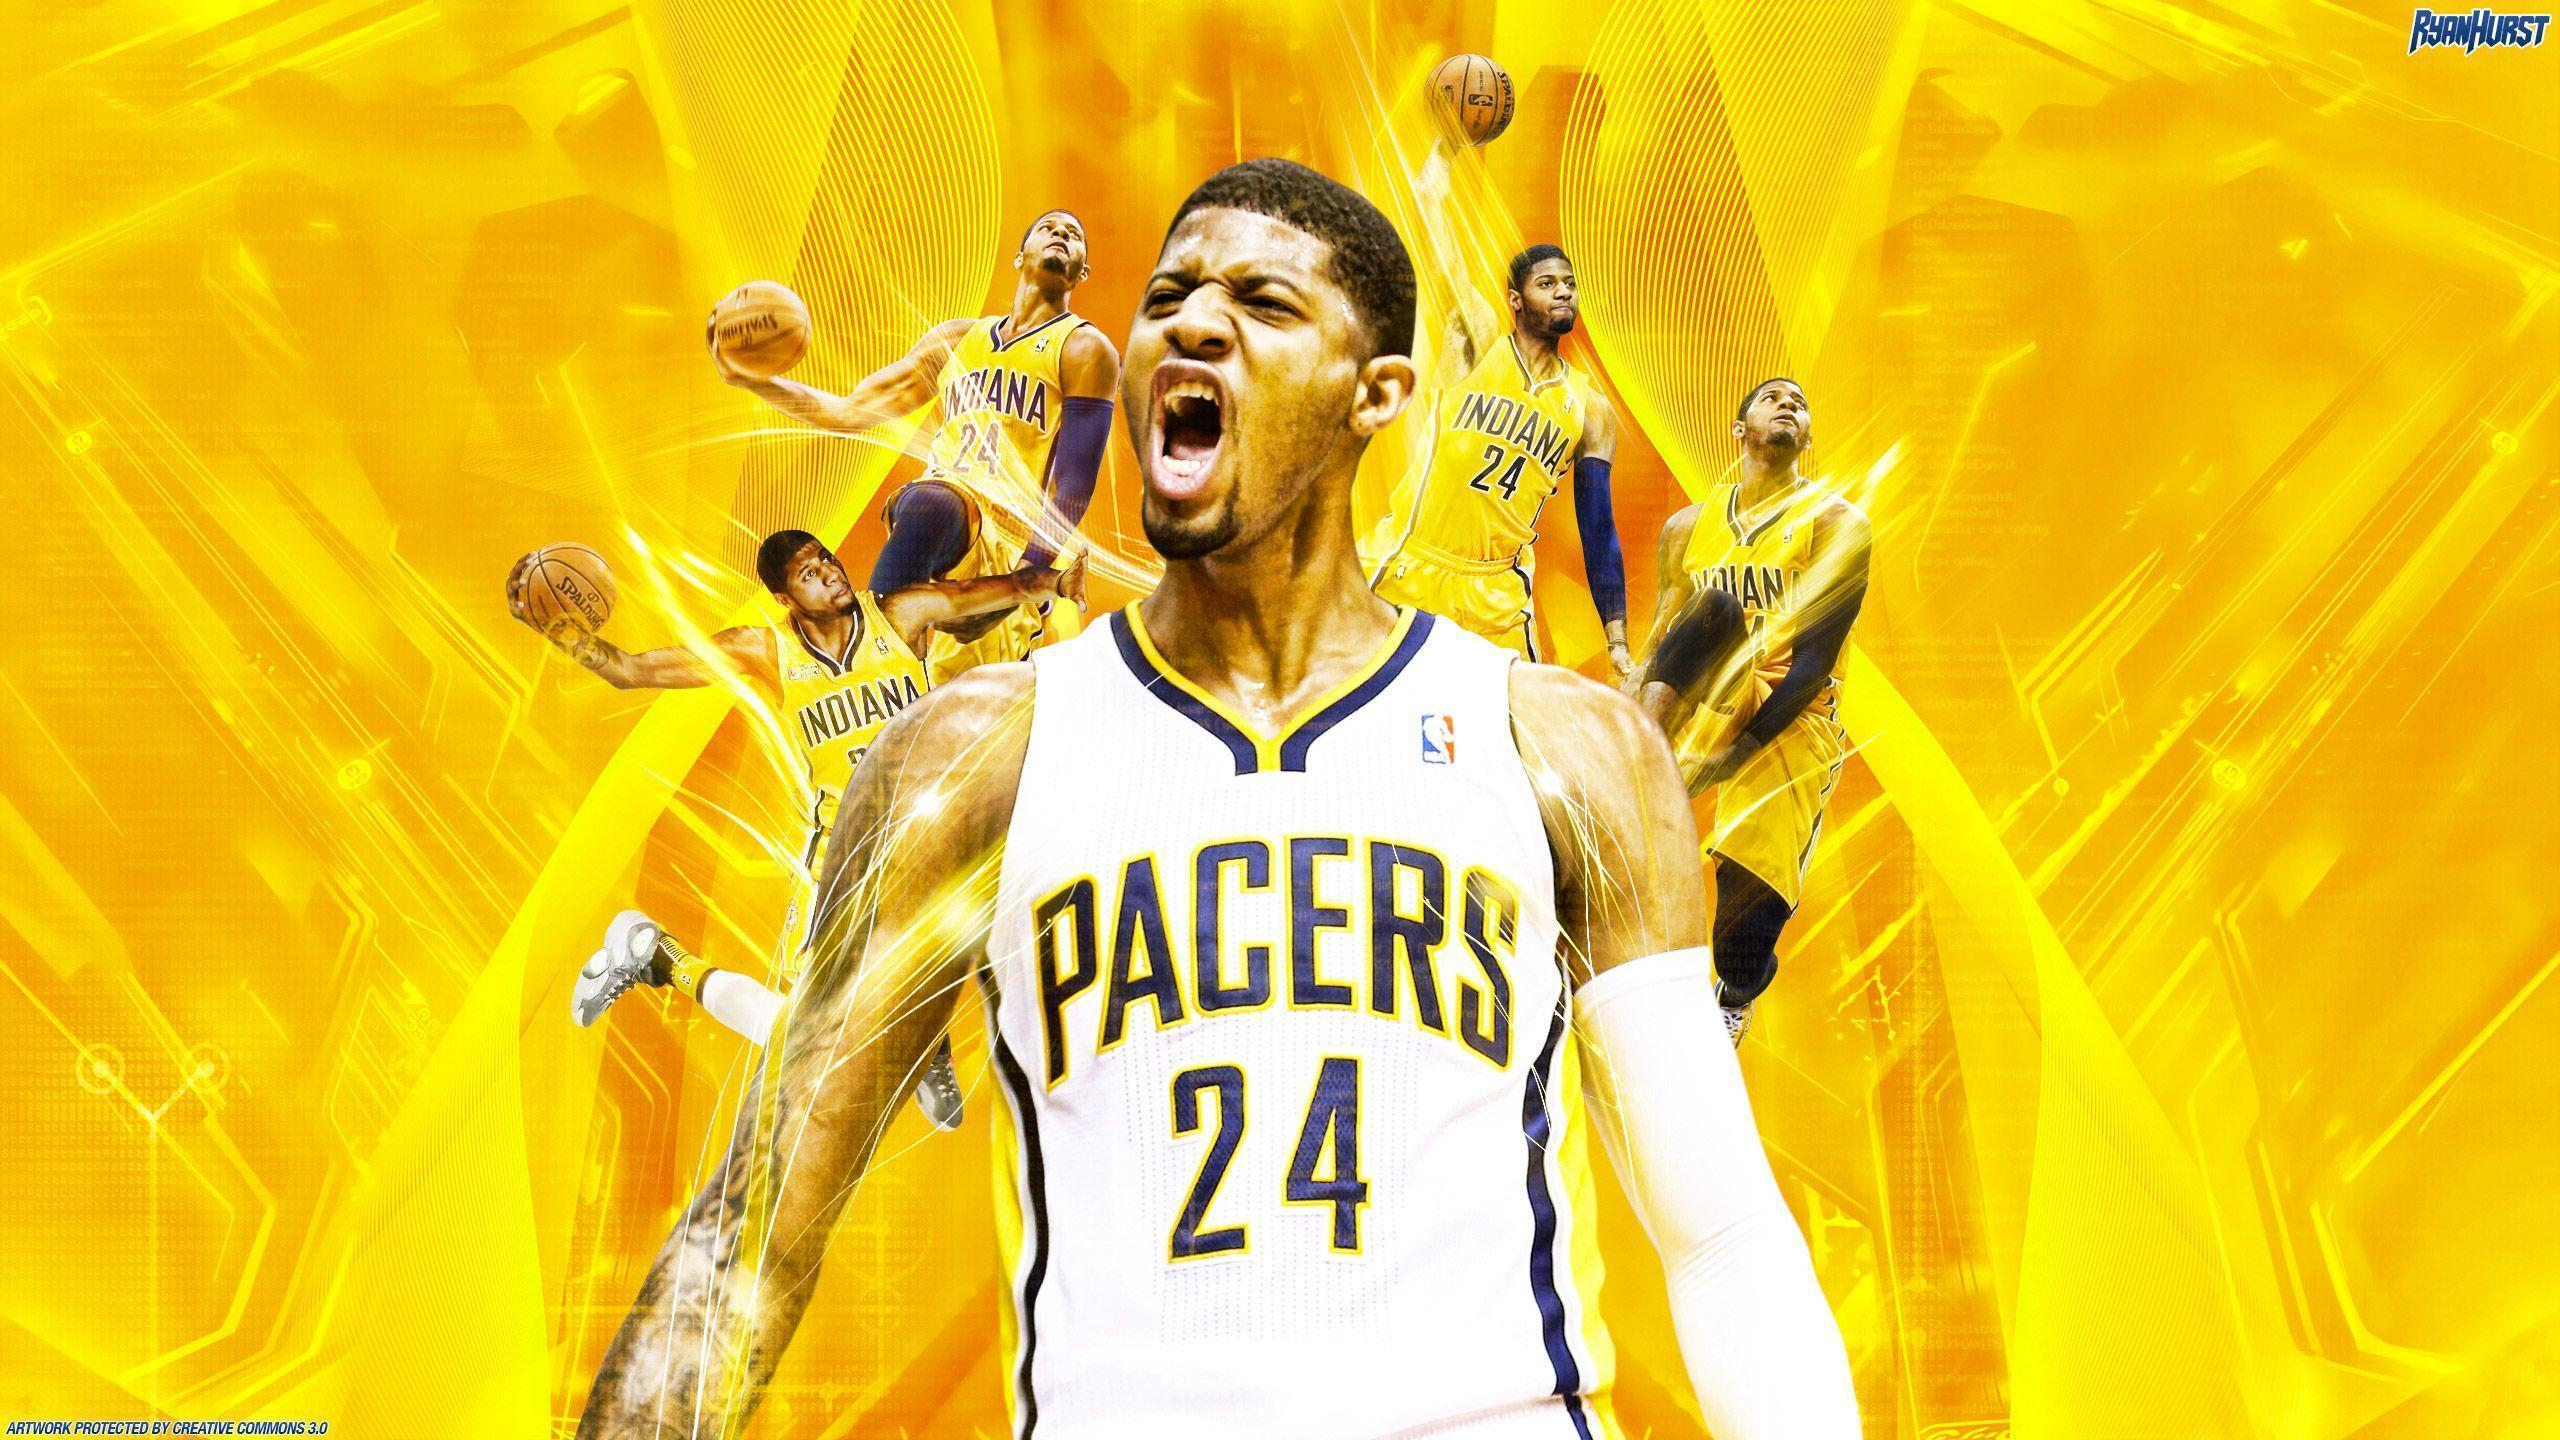 Paul George Wallpapers | Basketball Wallpapers at BasketWallpapers.com